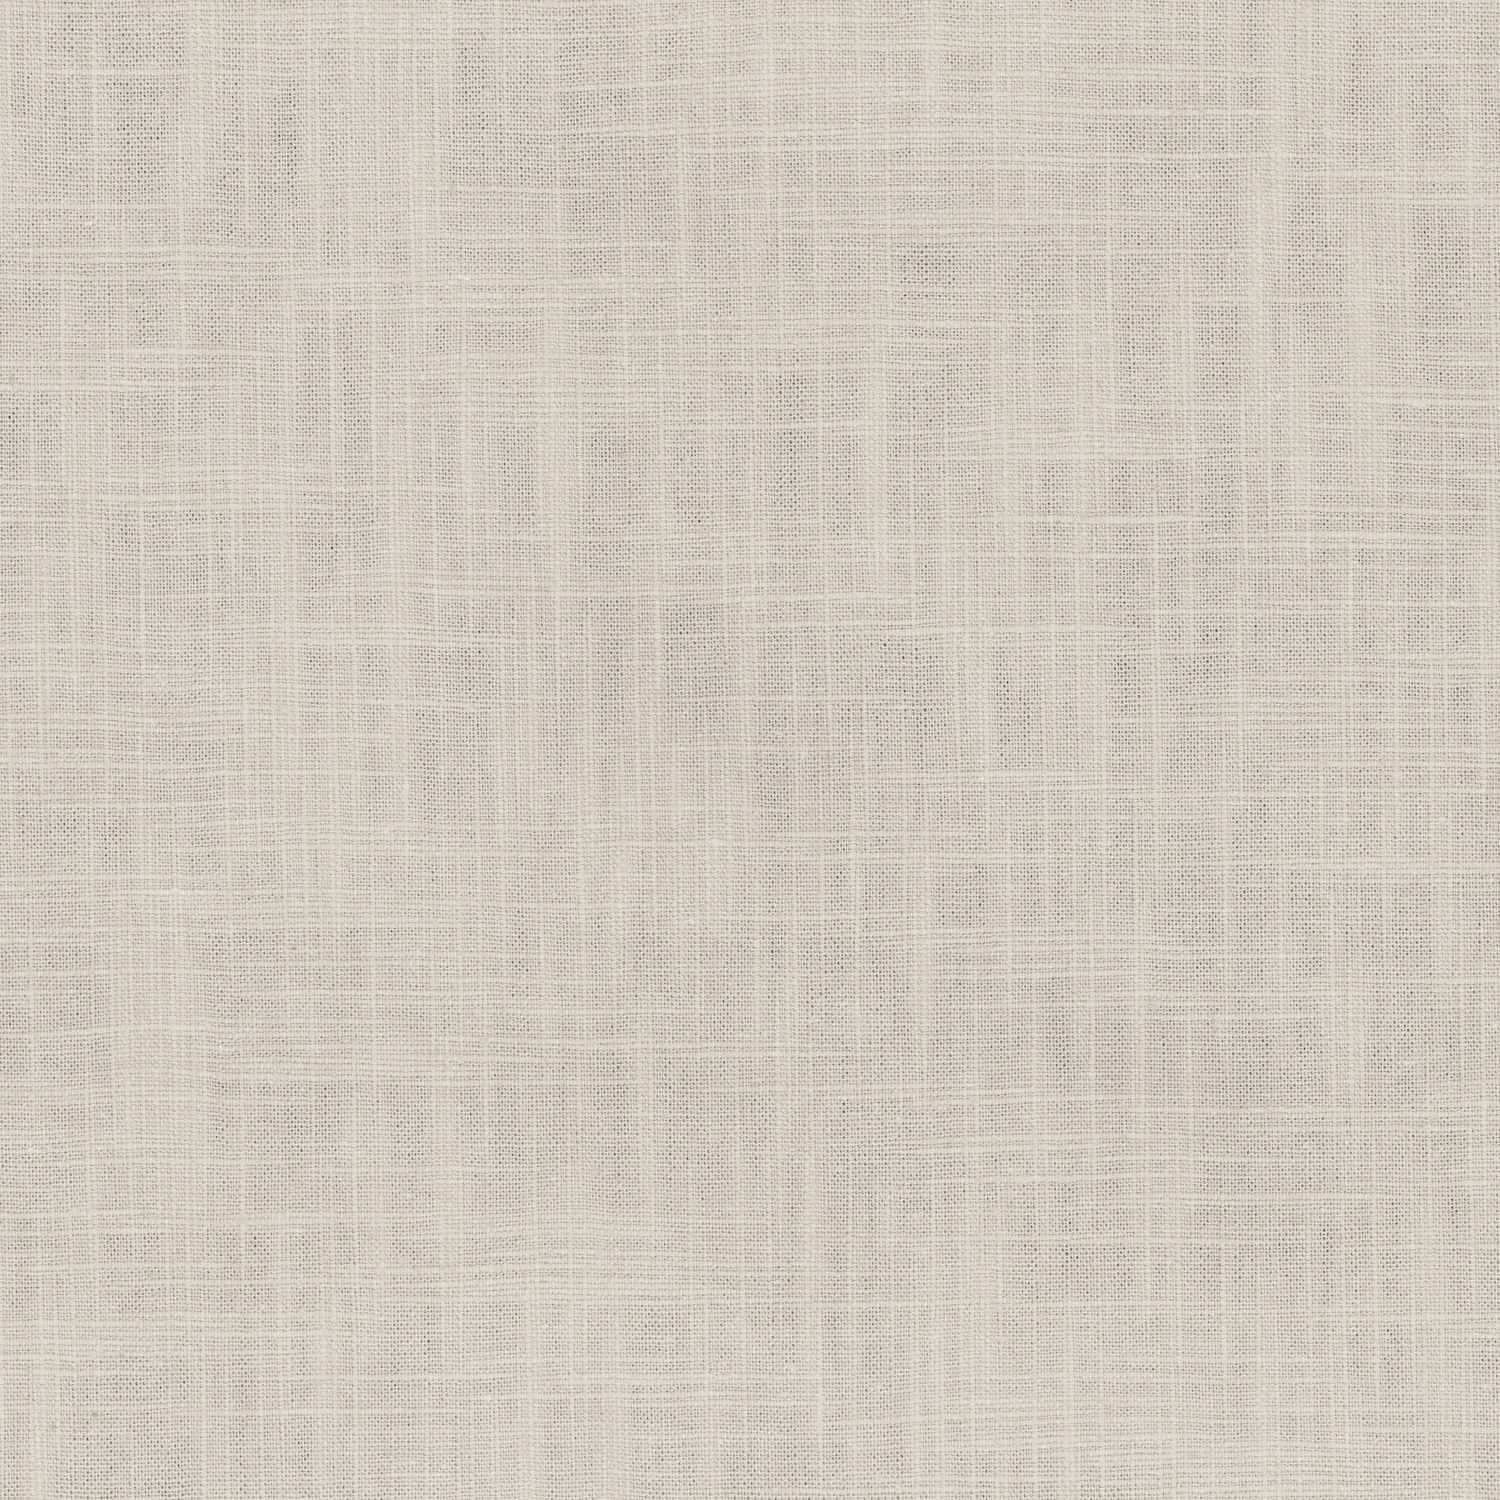 P/K Lifestyles Lightweight Decor Fabric 54\u0022-Derby Lightweight Decor/Linen